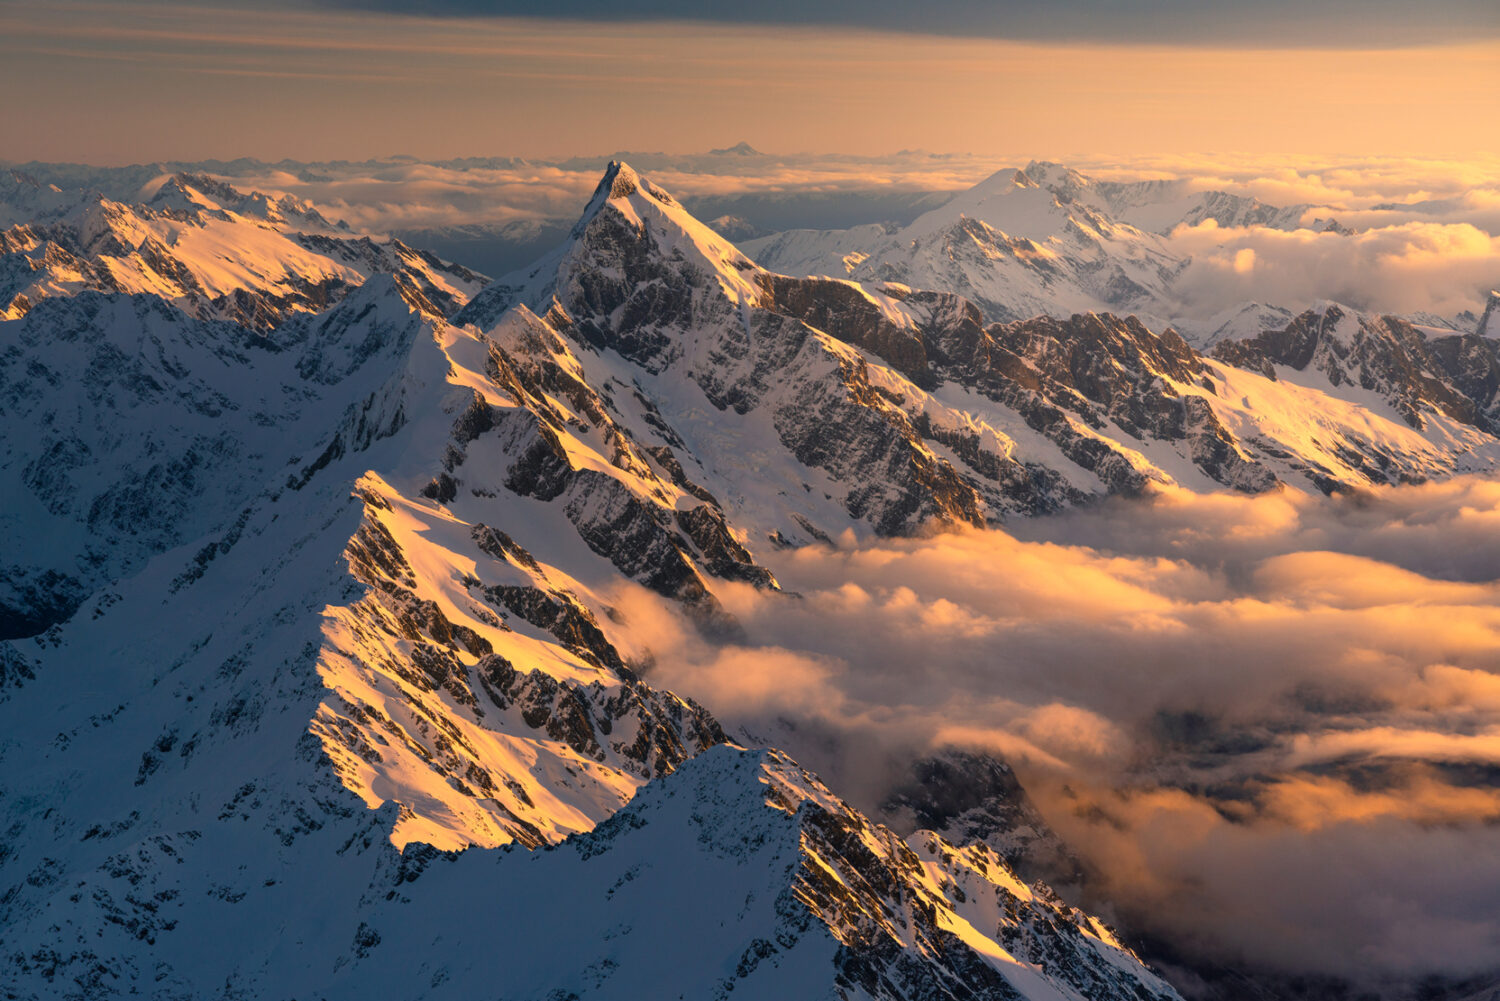 Sunset, Mount Sefton, New Zealand. Photography by William Patino.